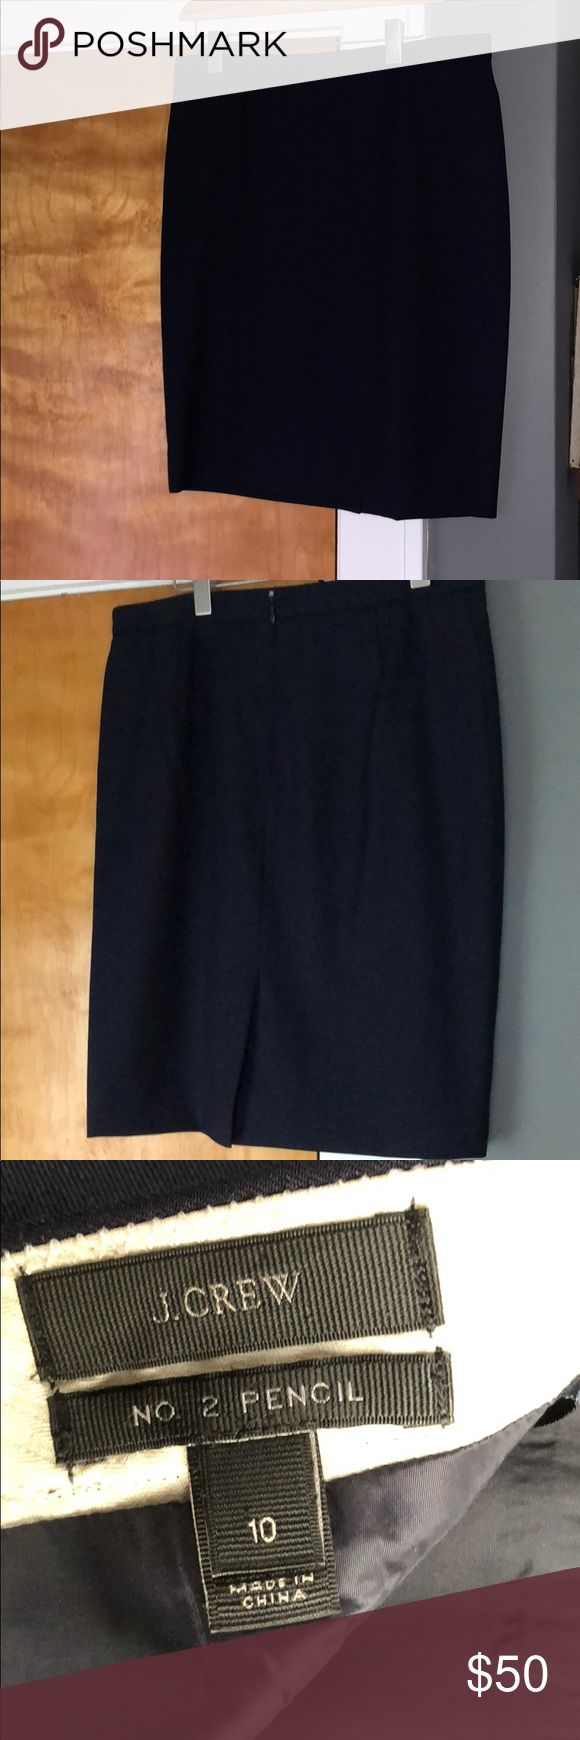 J. Crew all season wool No. 2 Pencil Skirt Classic Navy Pencil Skirt that will never go out of style!  Excellent Used Condition.  Flawless. J. Crew Skirts Pencil